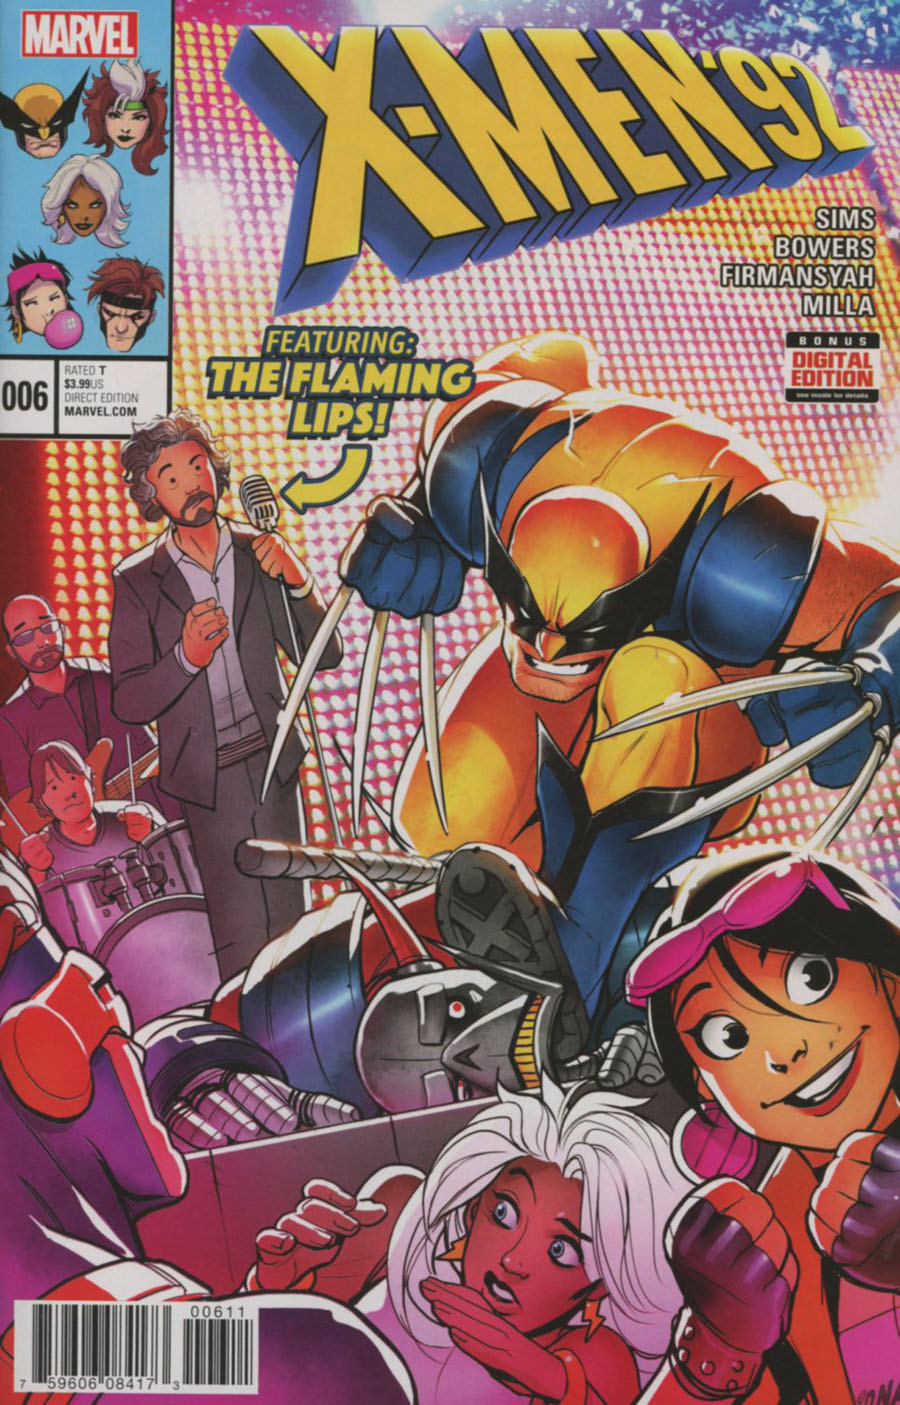 X-Men 92 Vol 2 #6 Cover A Regular David Nakayama Cover